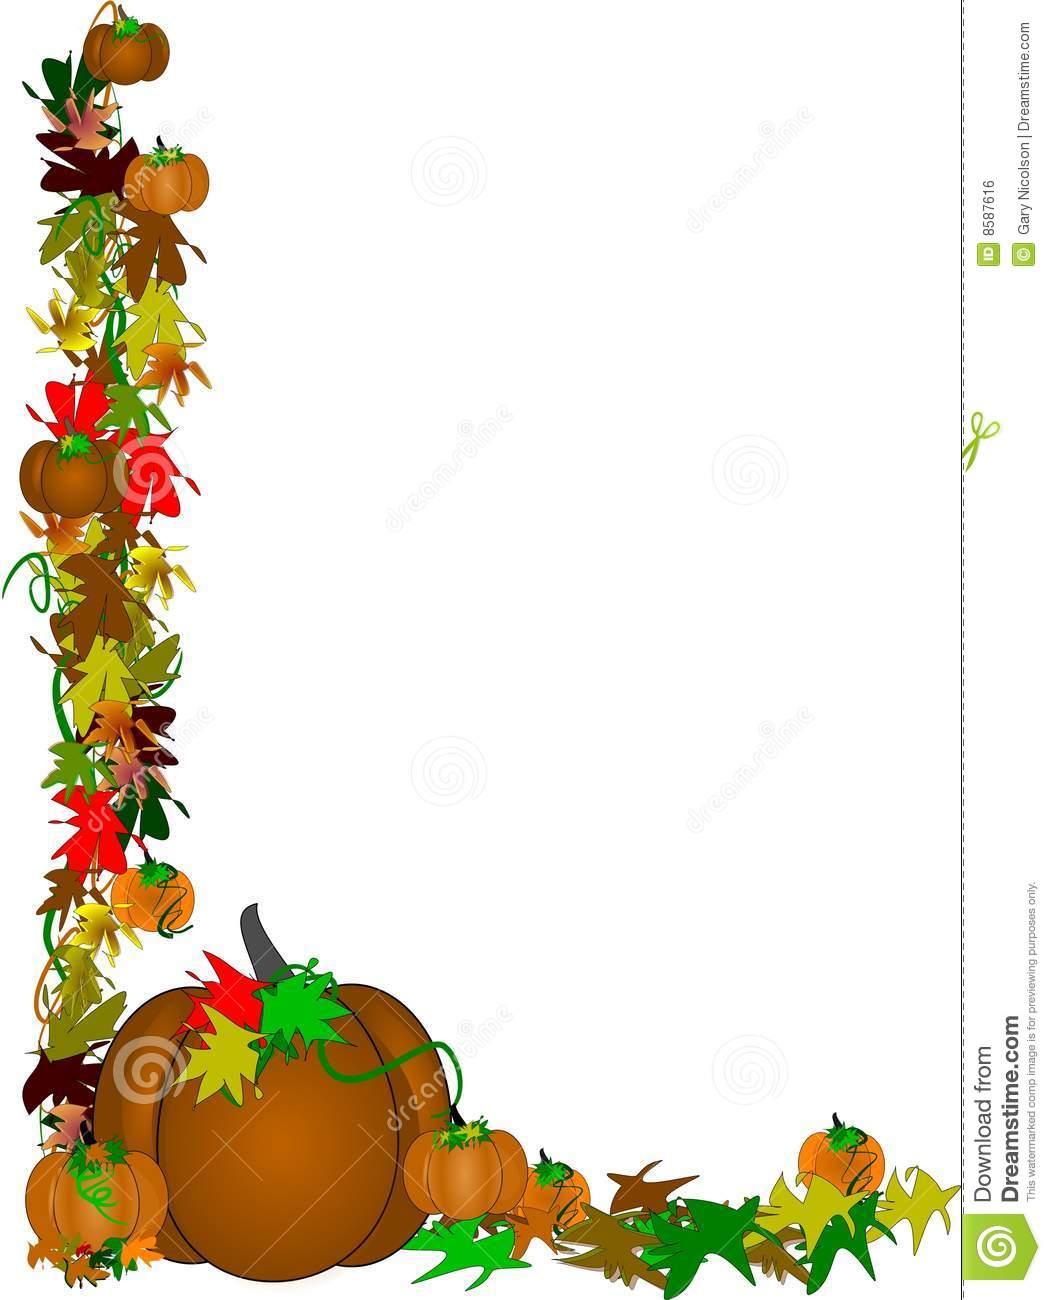 Brown Pumpkin Border Design Royalty Free Stock Image - Image: 8587616